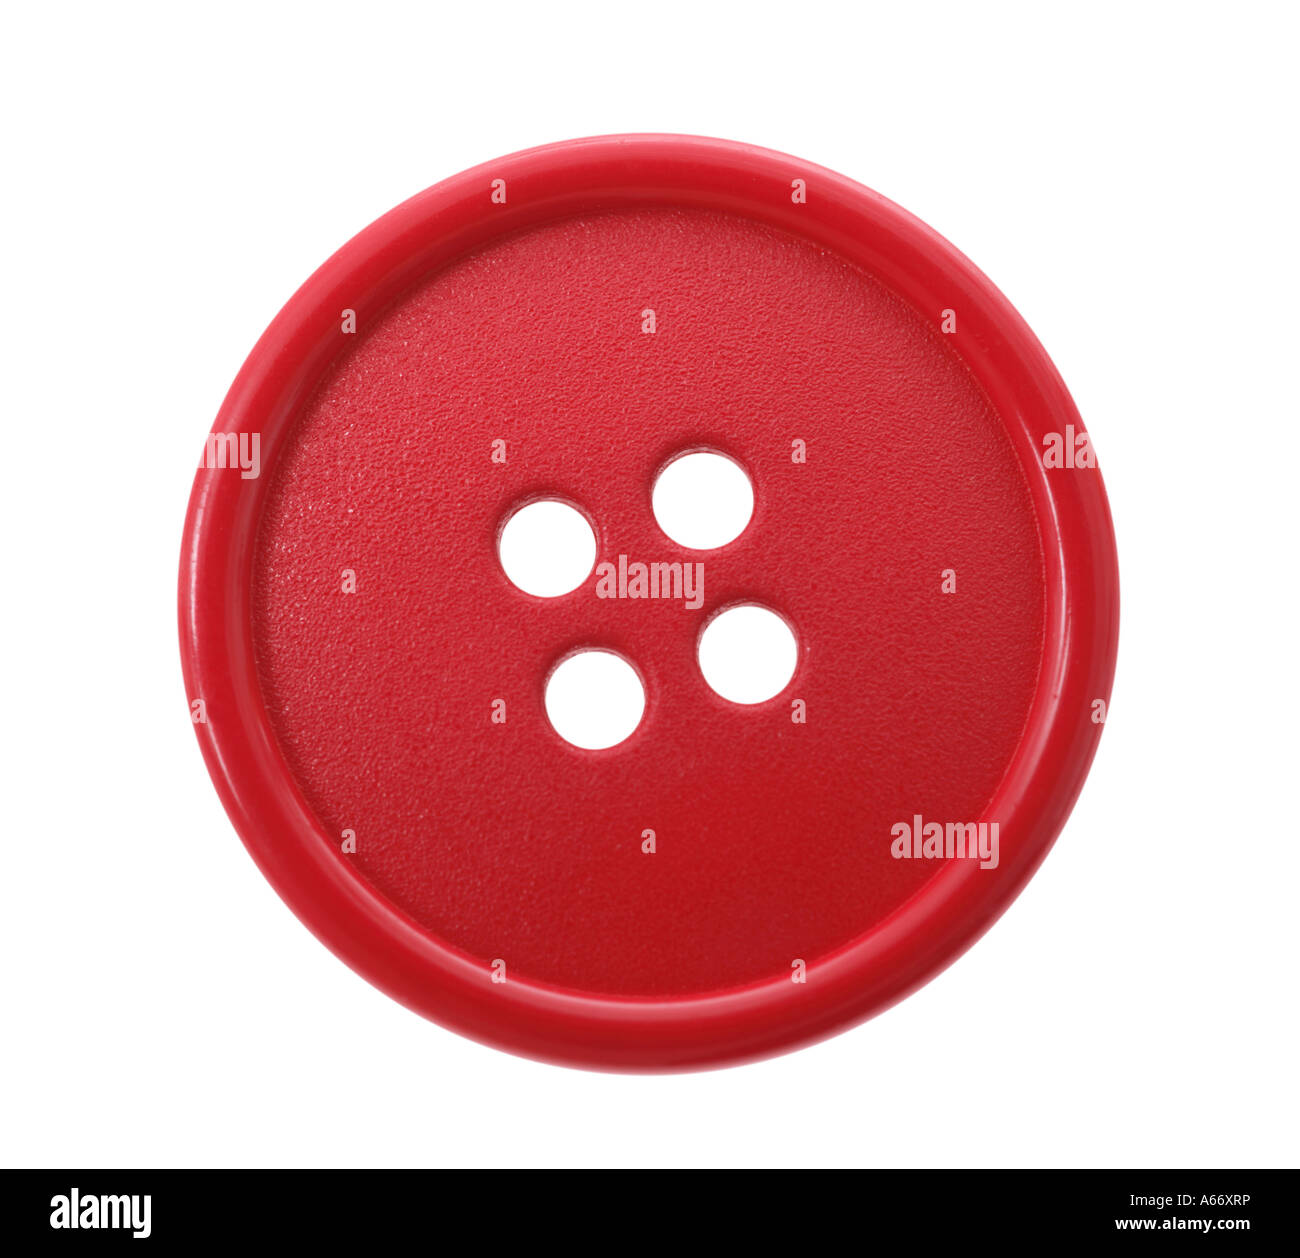 Red button cut out on white background - Stock Image